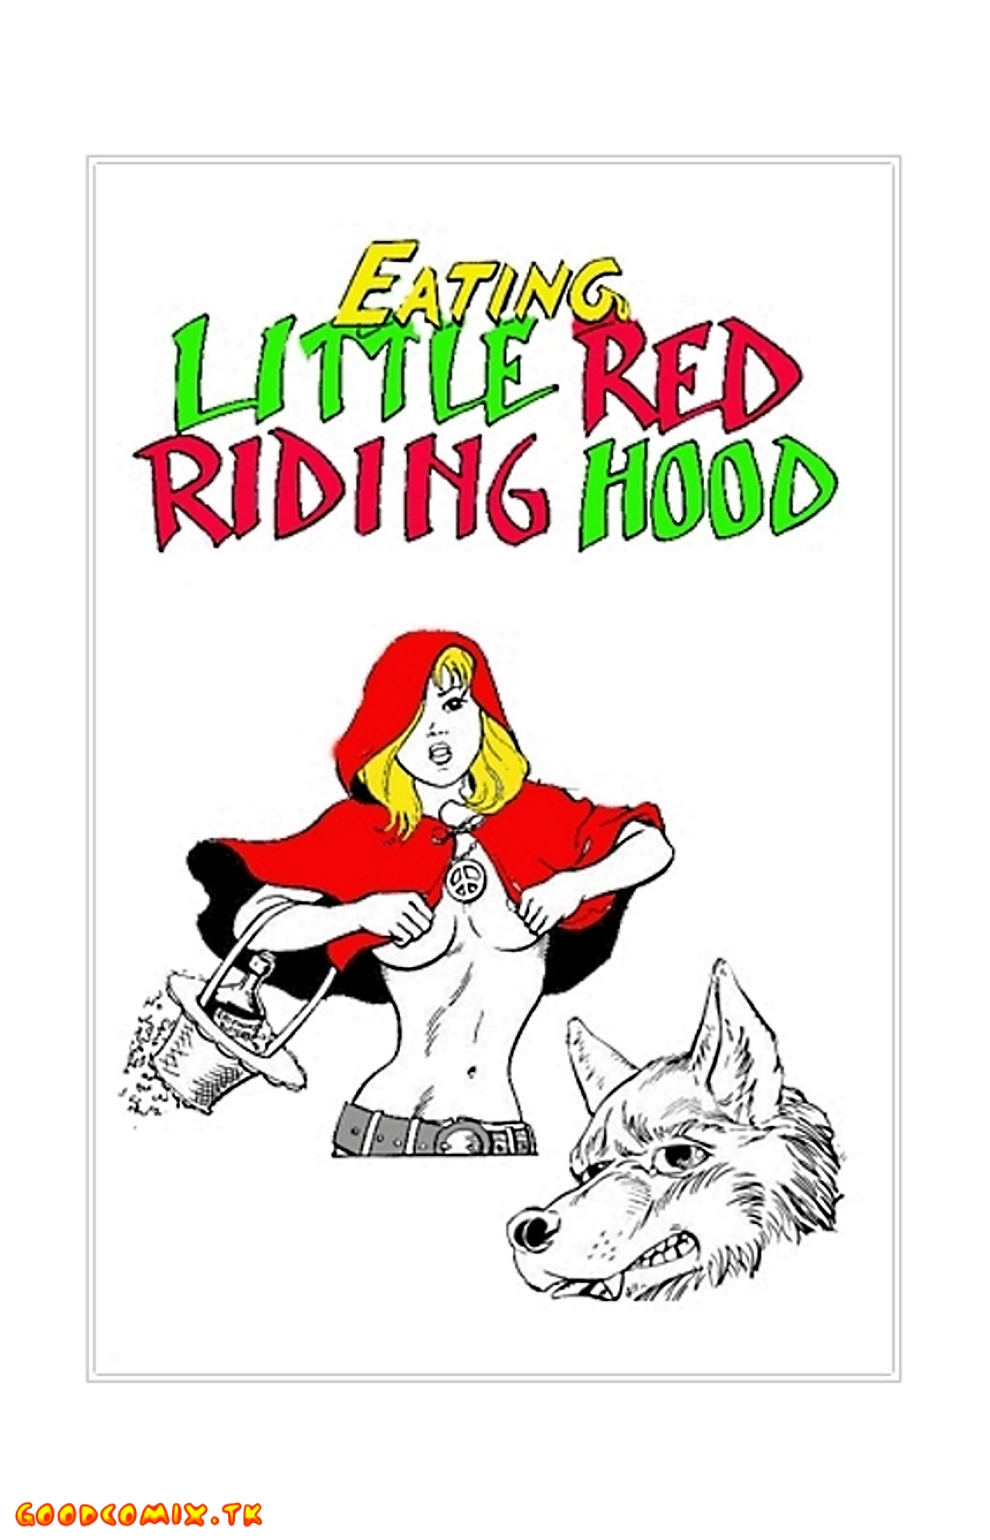 Goodcomix.tk Little Red Riding Hood - Eating Little Red Riding Hood